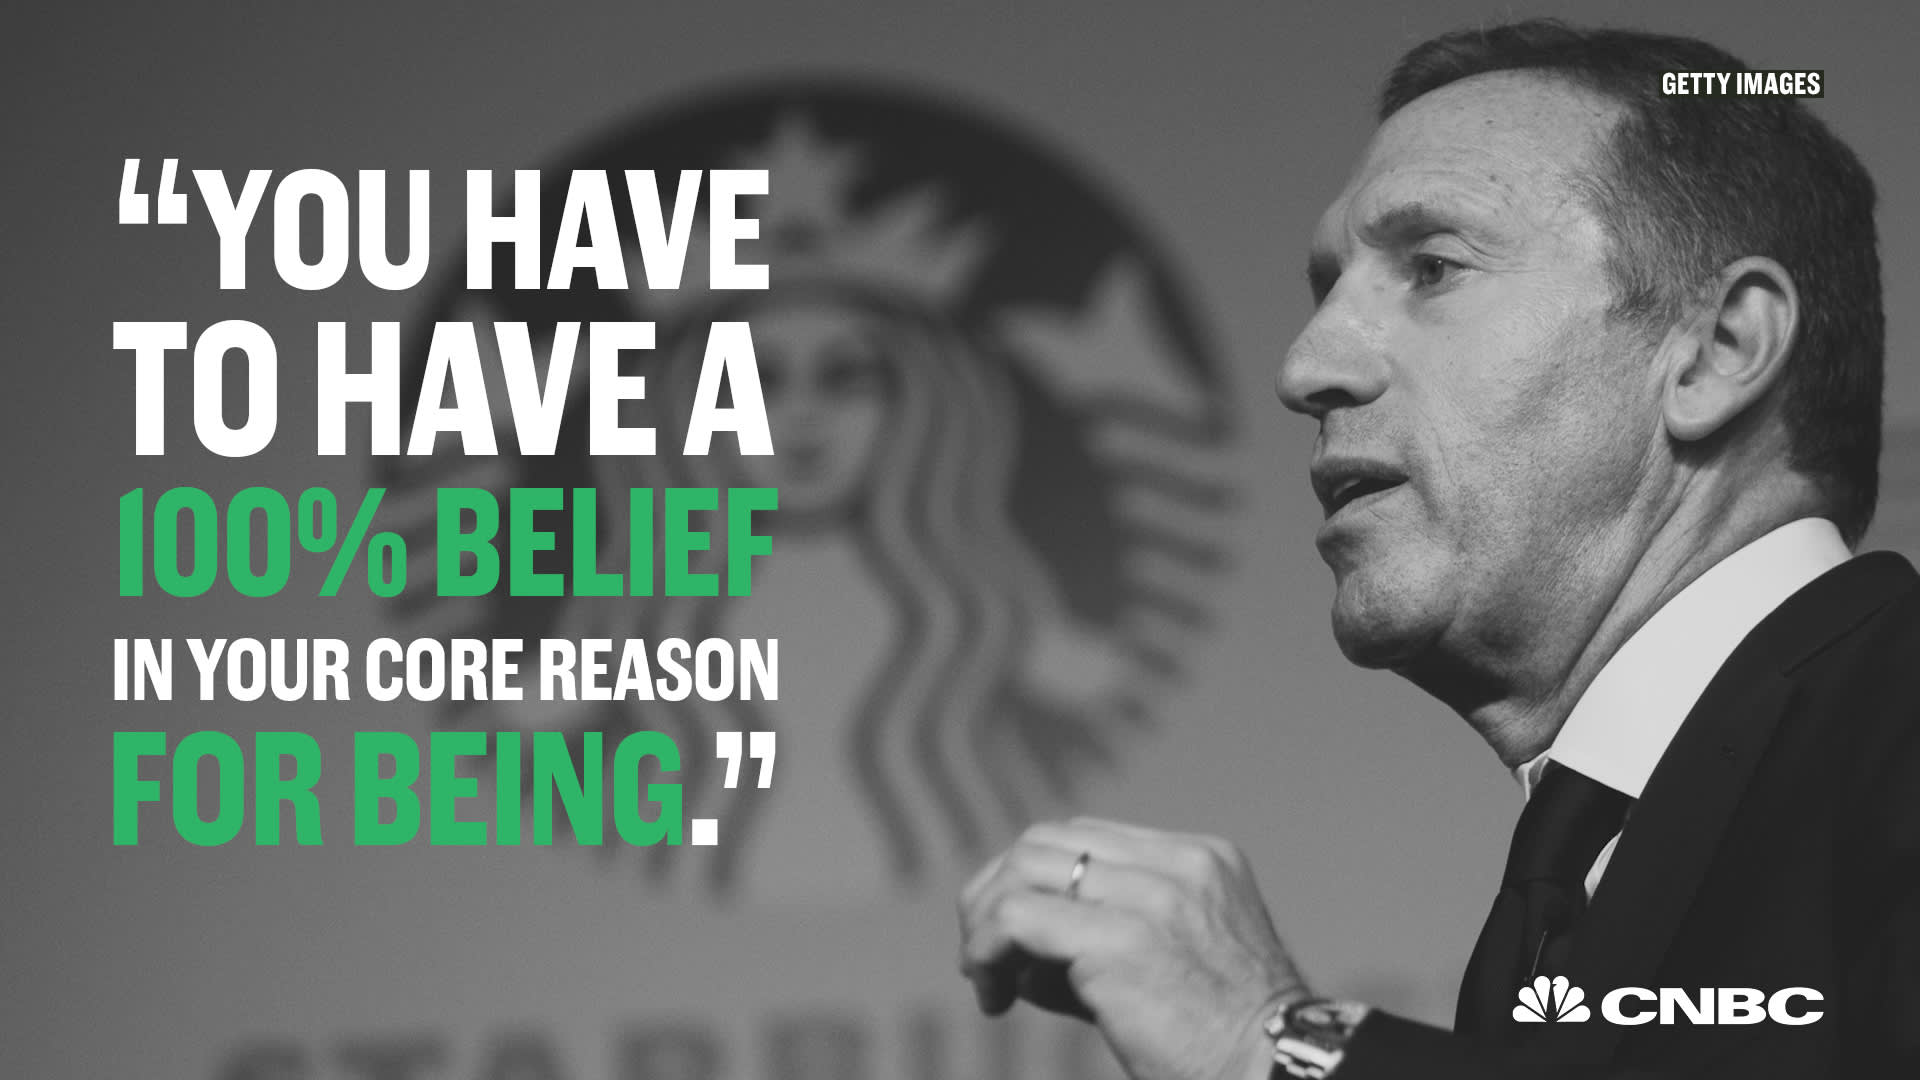 Inspirational quotes from Starbucks CEO Howard Schultz